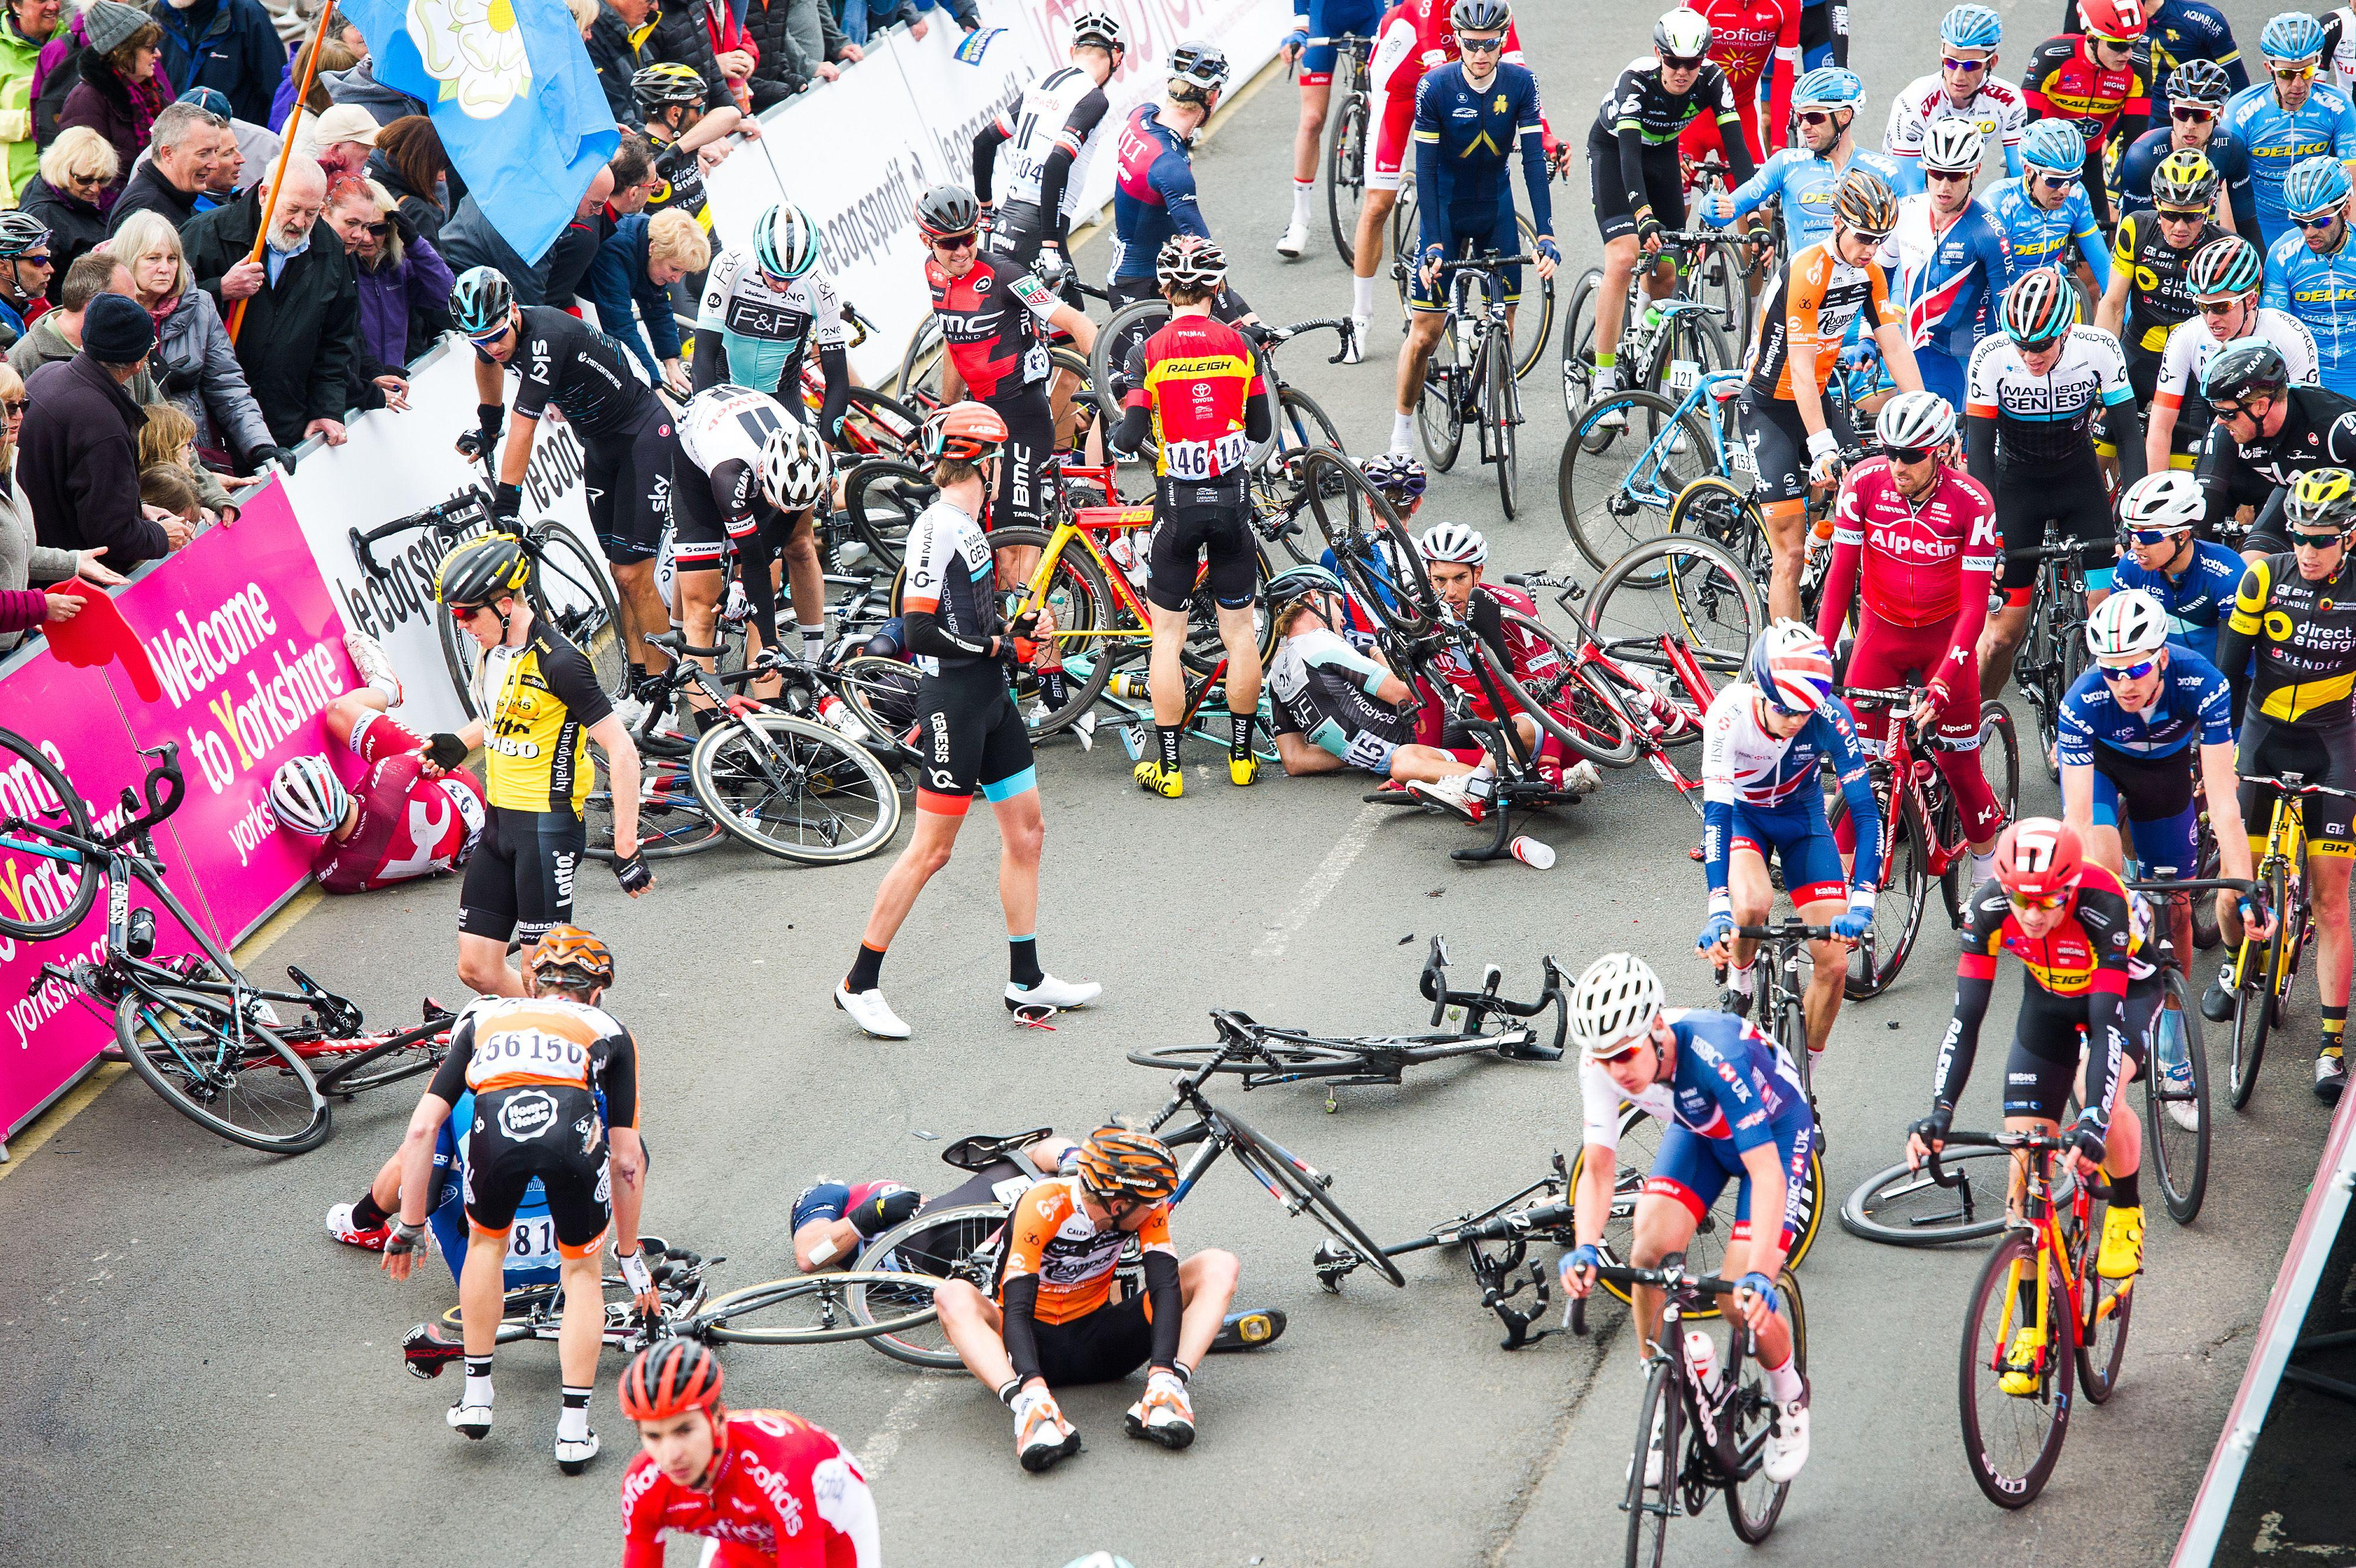 A horrific crash marred the first stage of the Tour de Yorkshire in Scarborough today